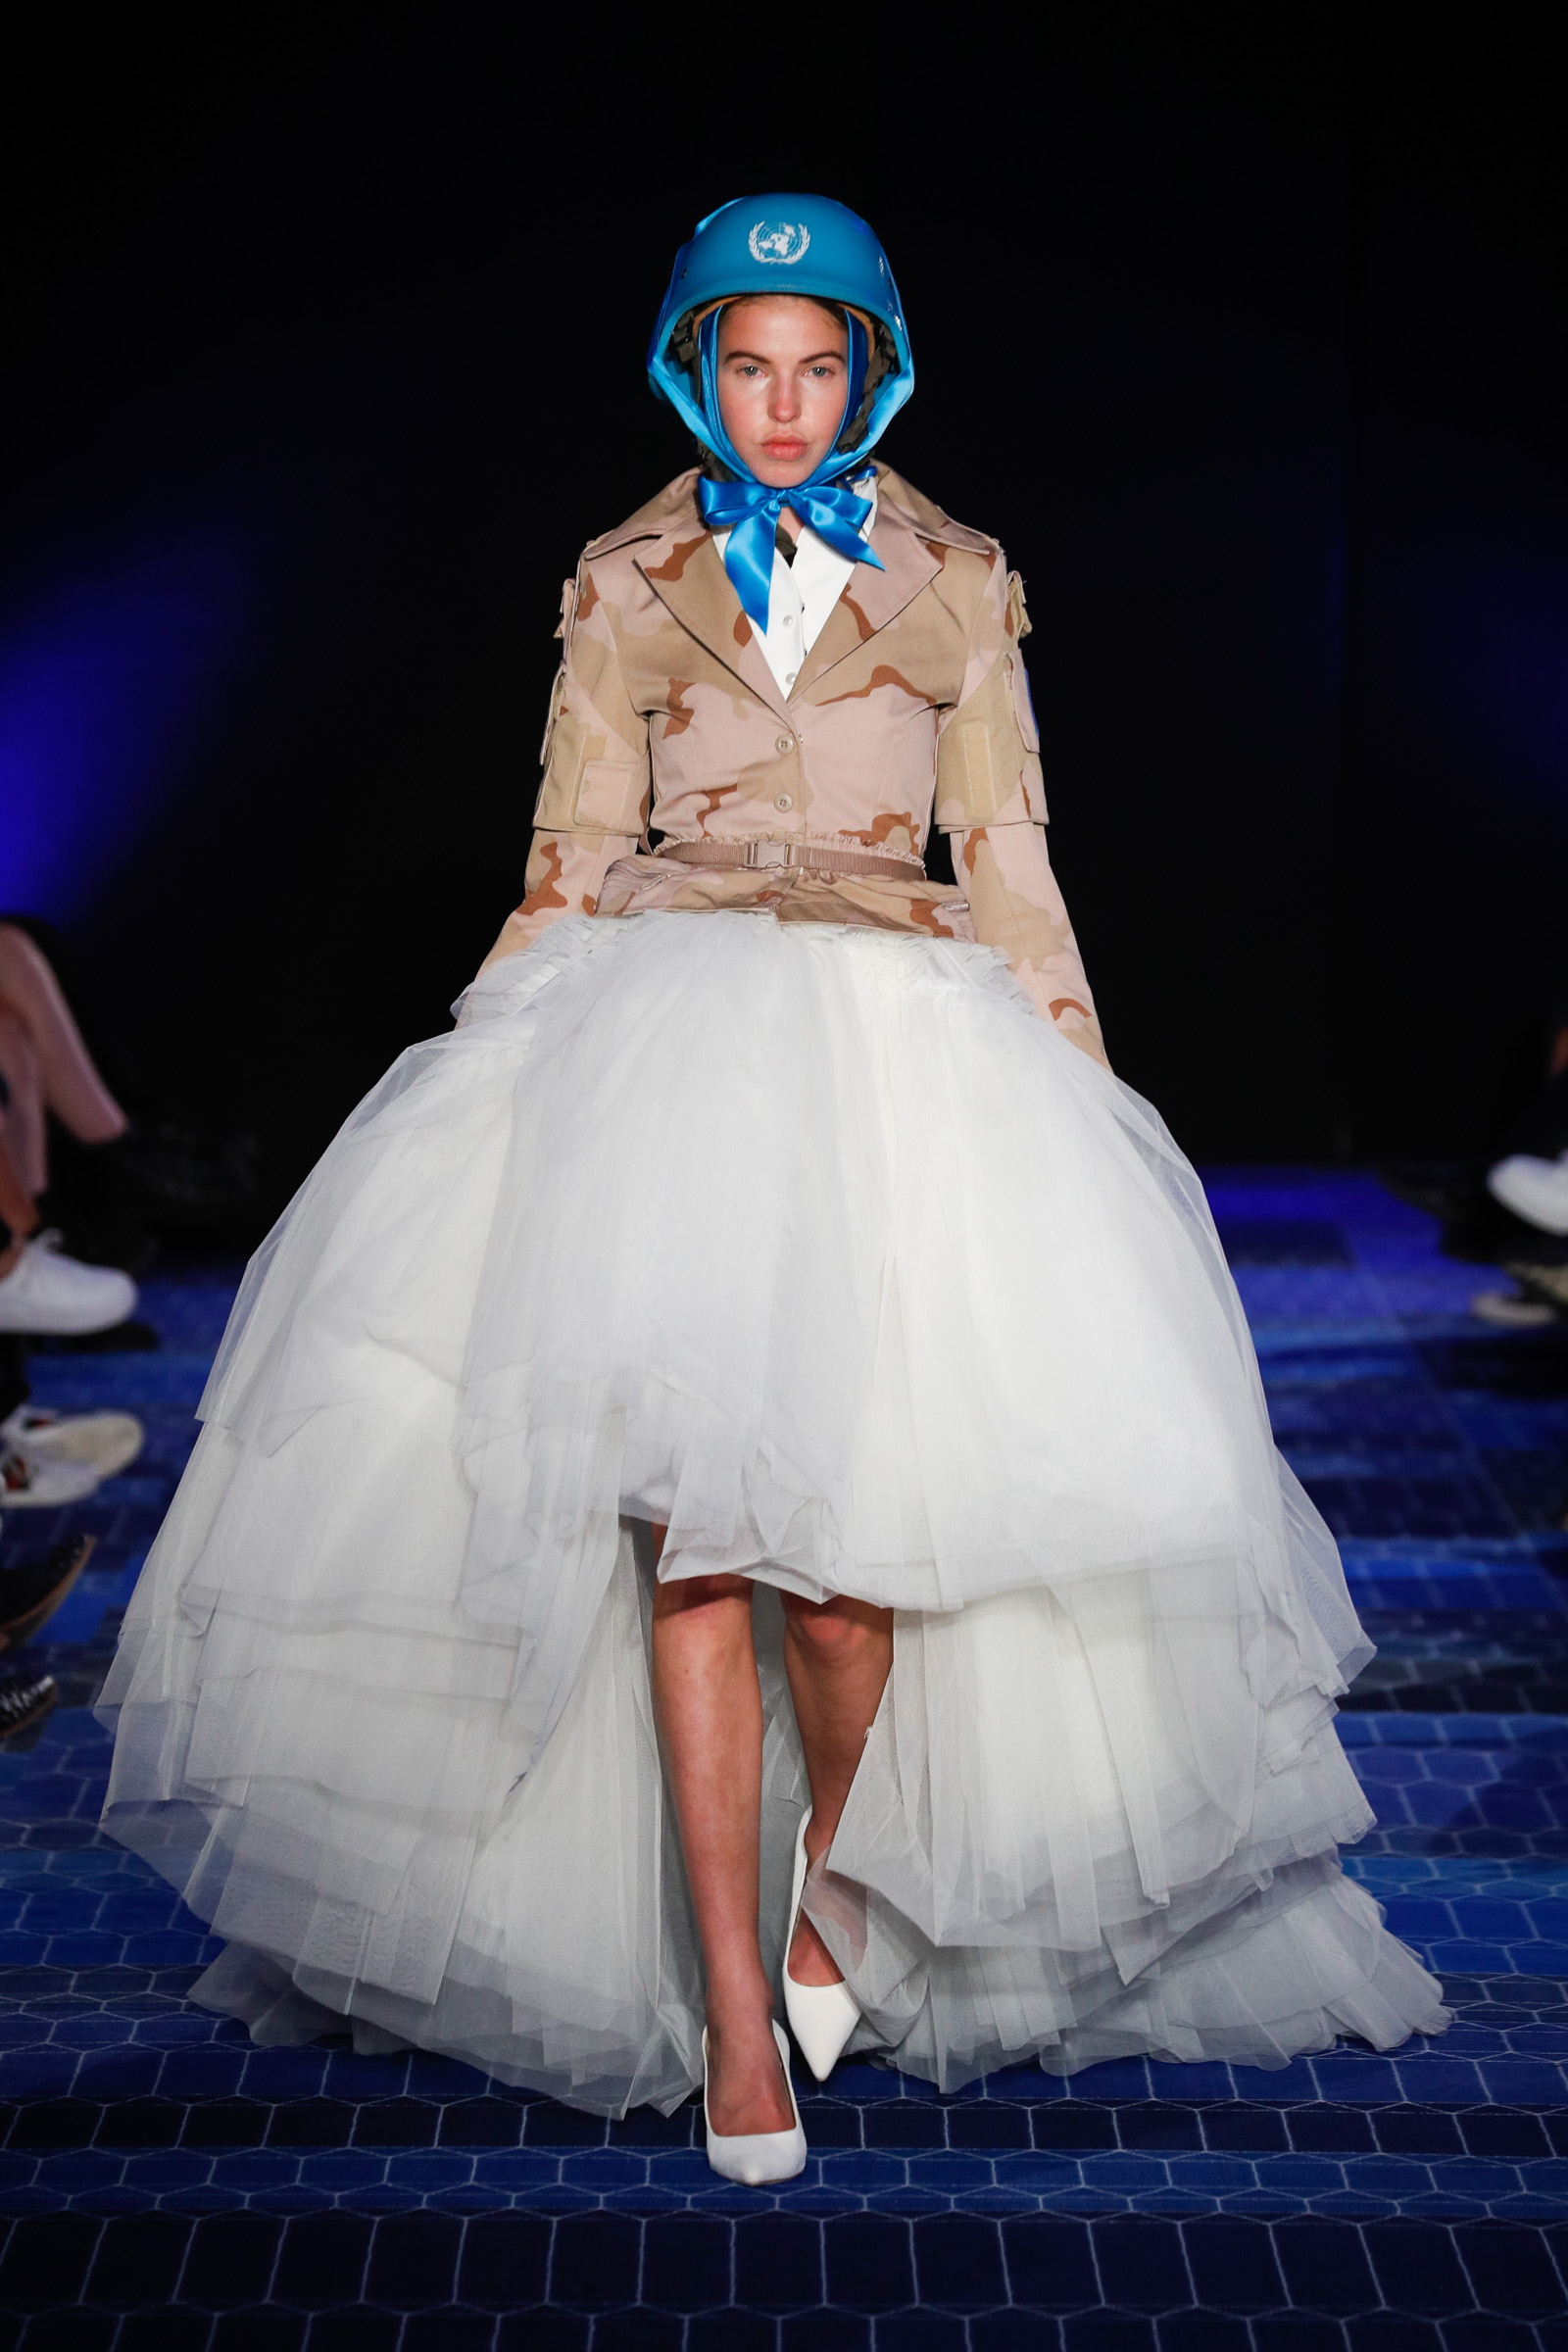 Benchellal at Dutch Sustainable Fashion Week